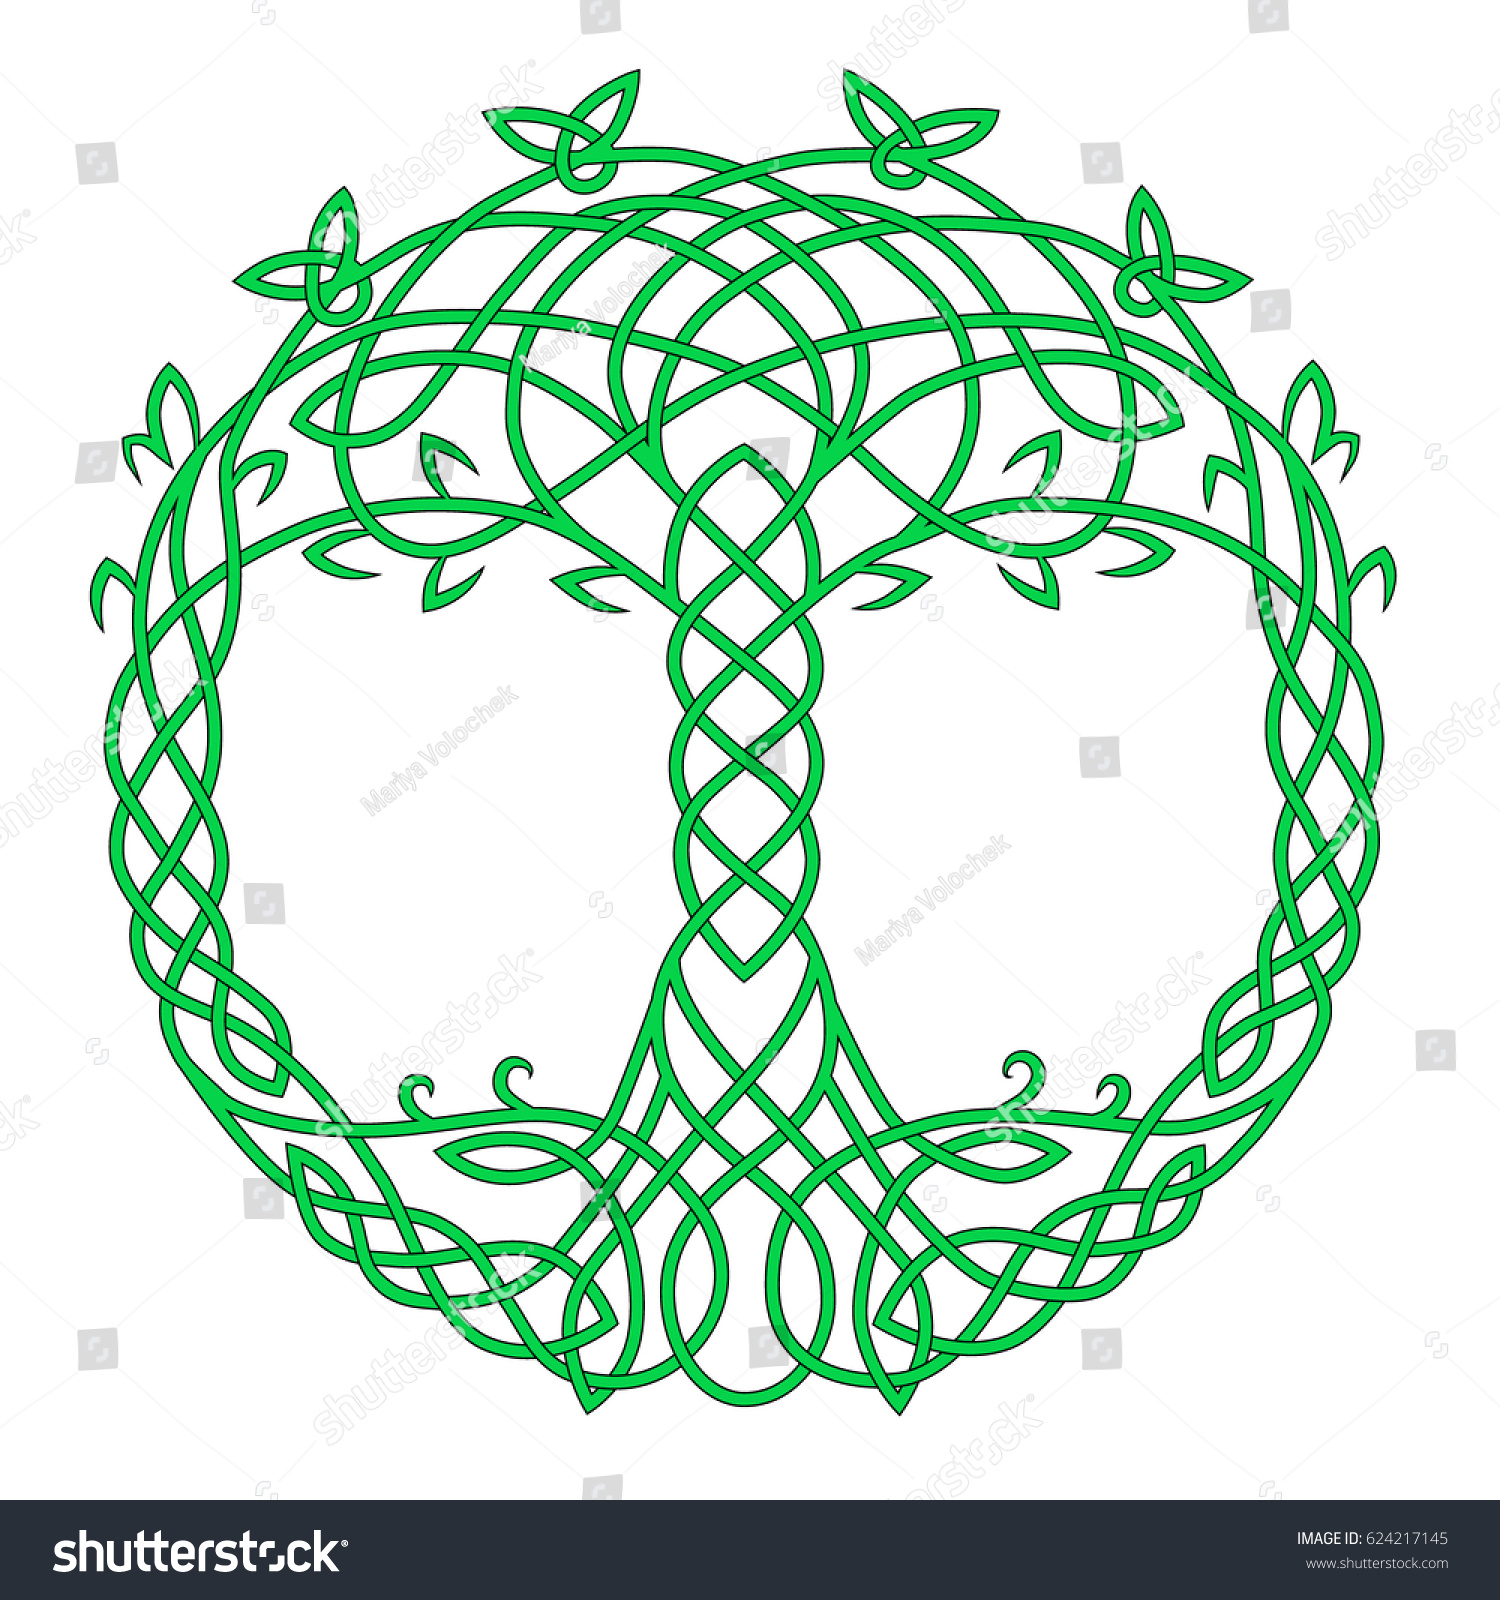 Celtic Round Color Drawing Symbol Tree Stock Vector Hd Royalty Free